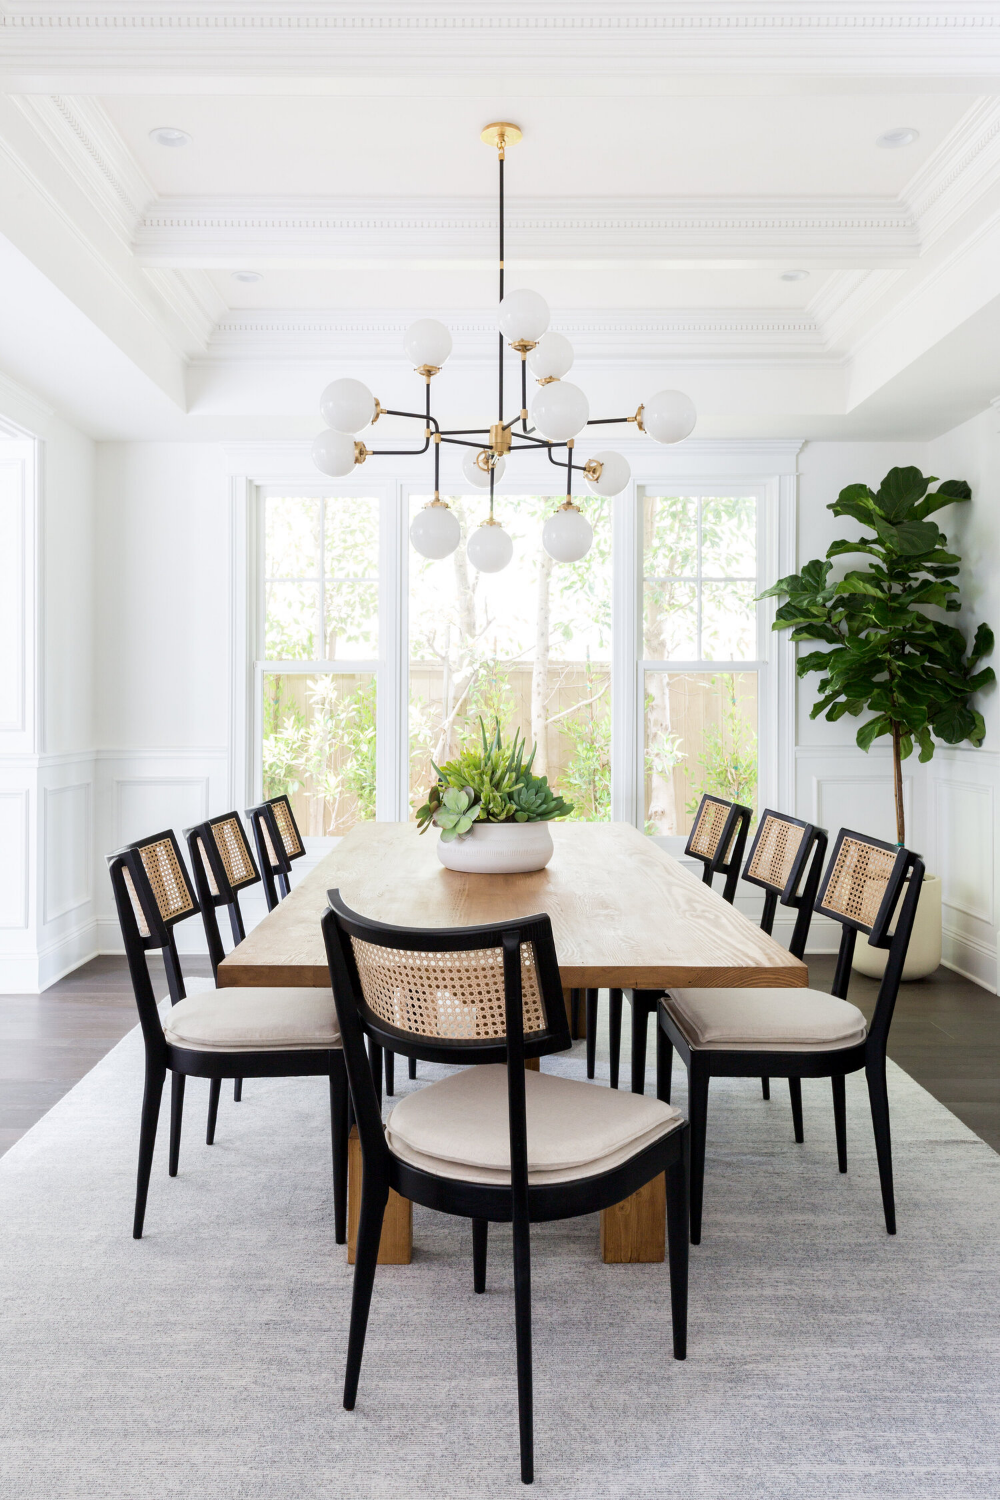 Photo of Your Favorite Spaces in 2019 — Lindsey Brooke Design